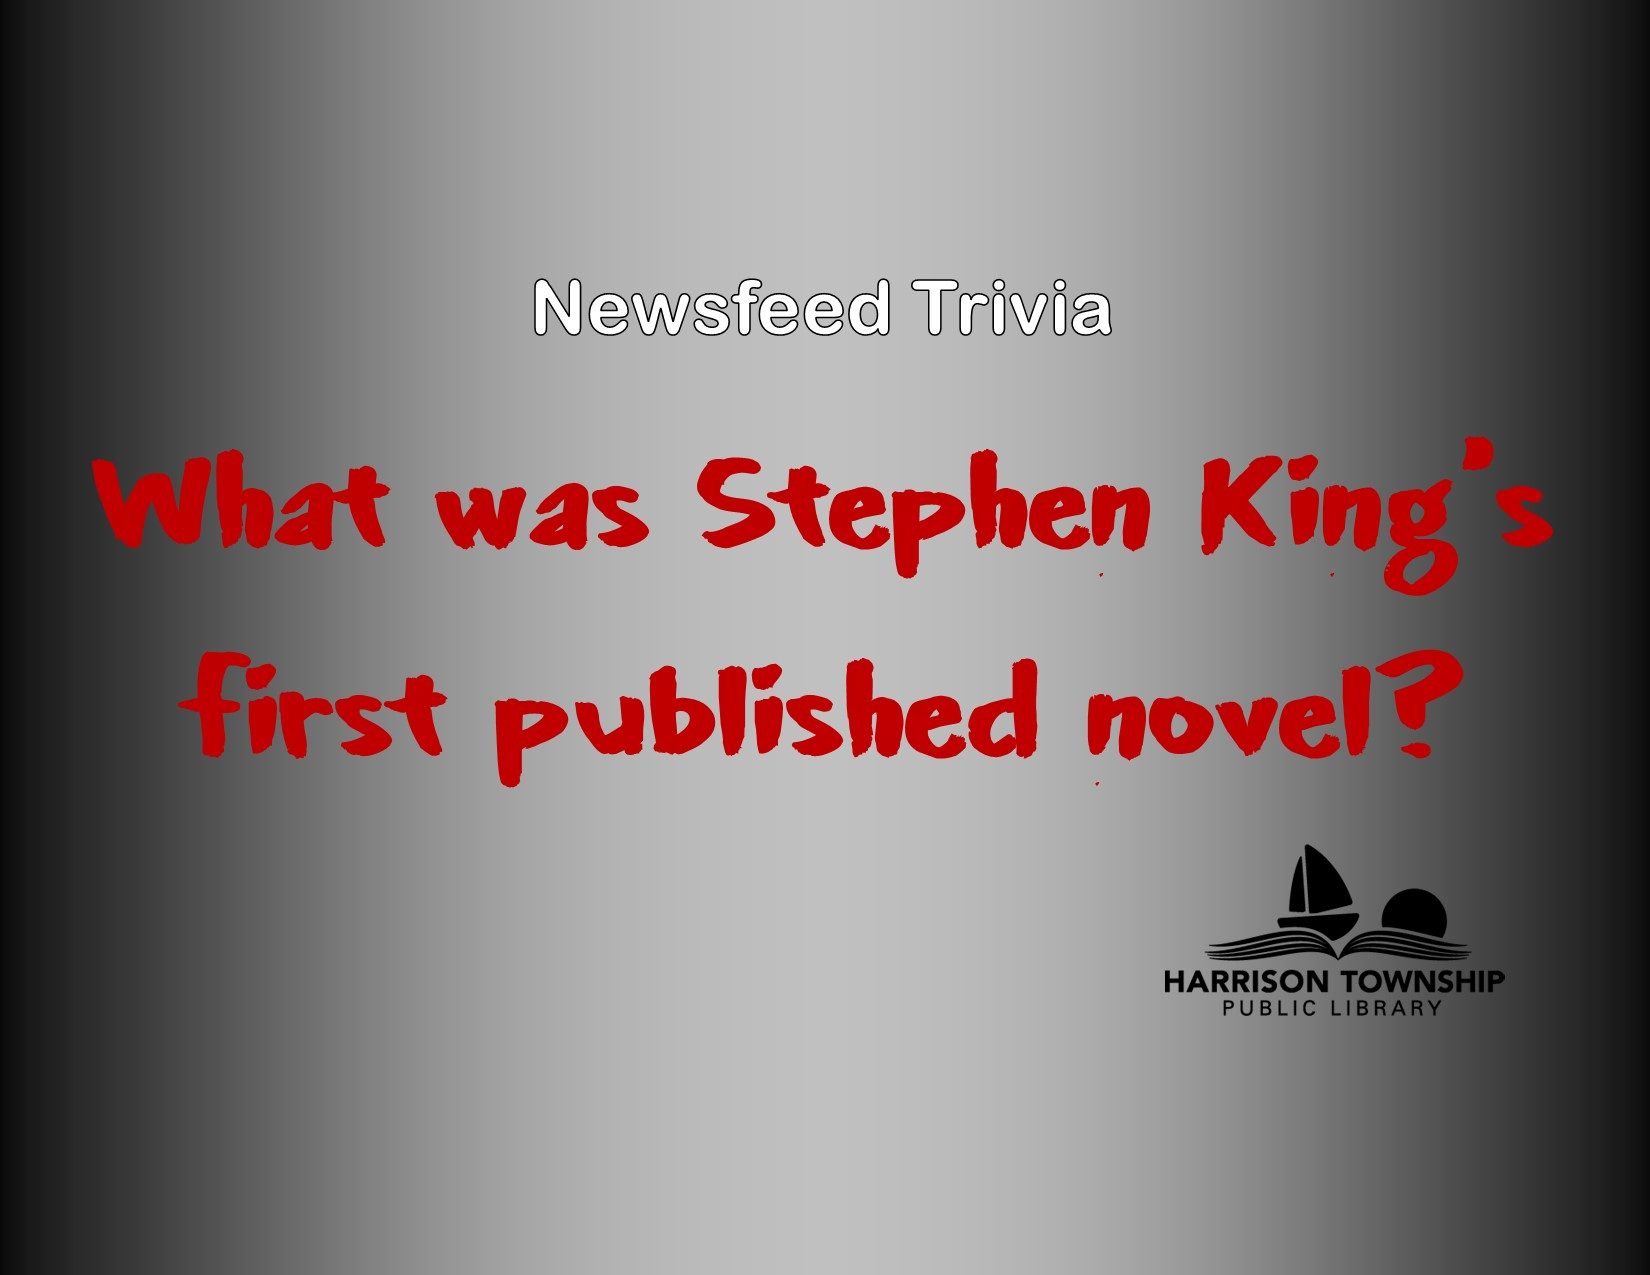 What was Stephen King's first published novel?